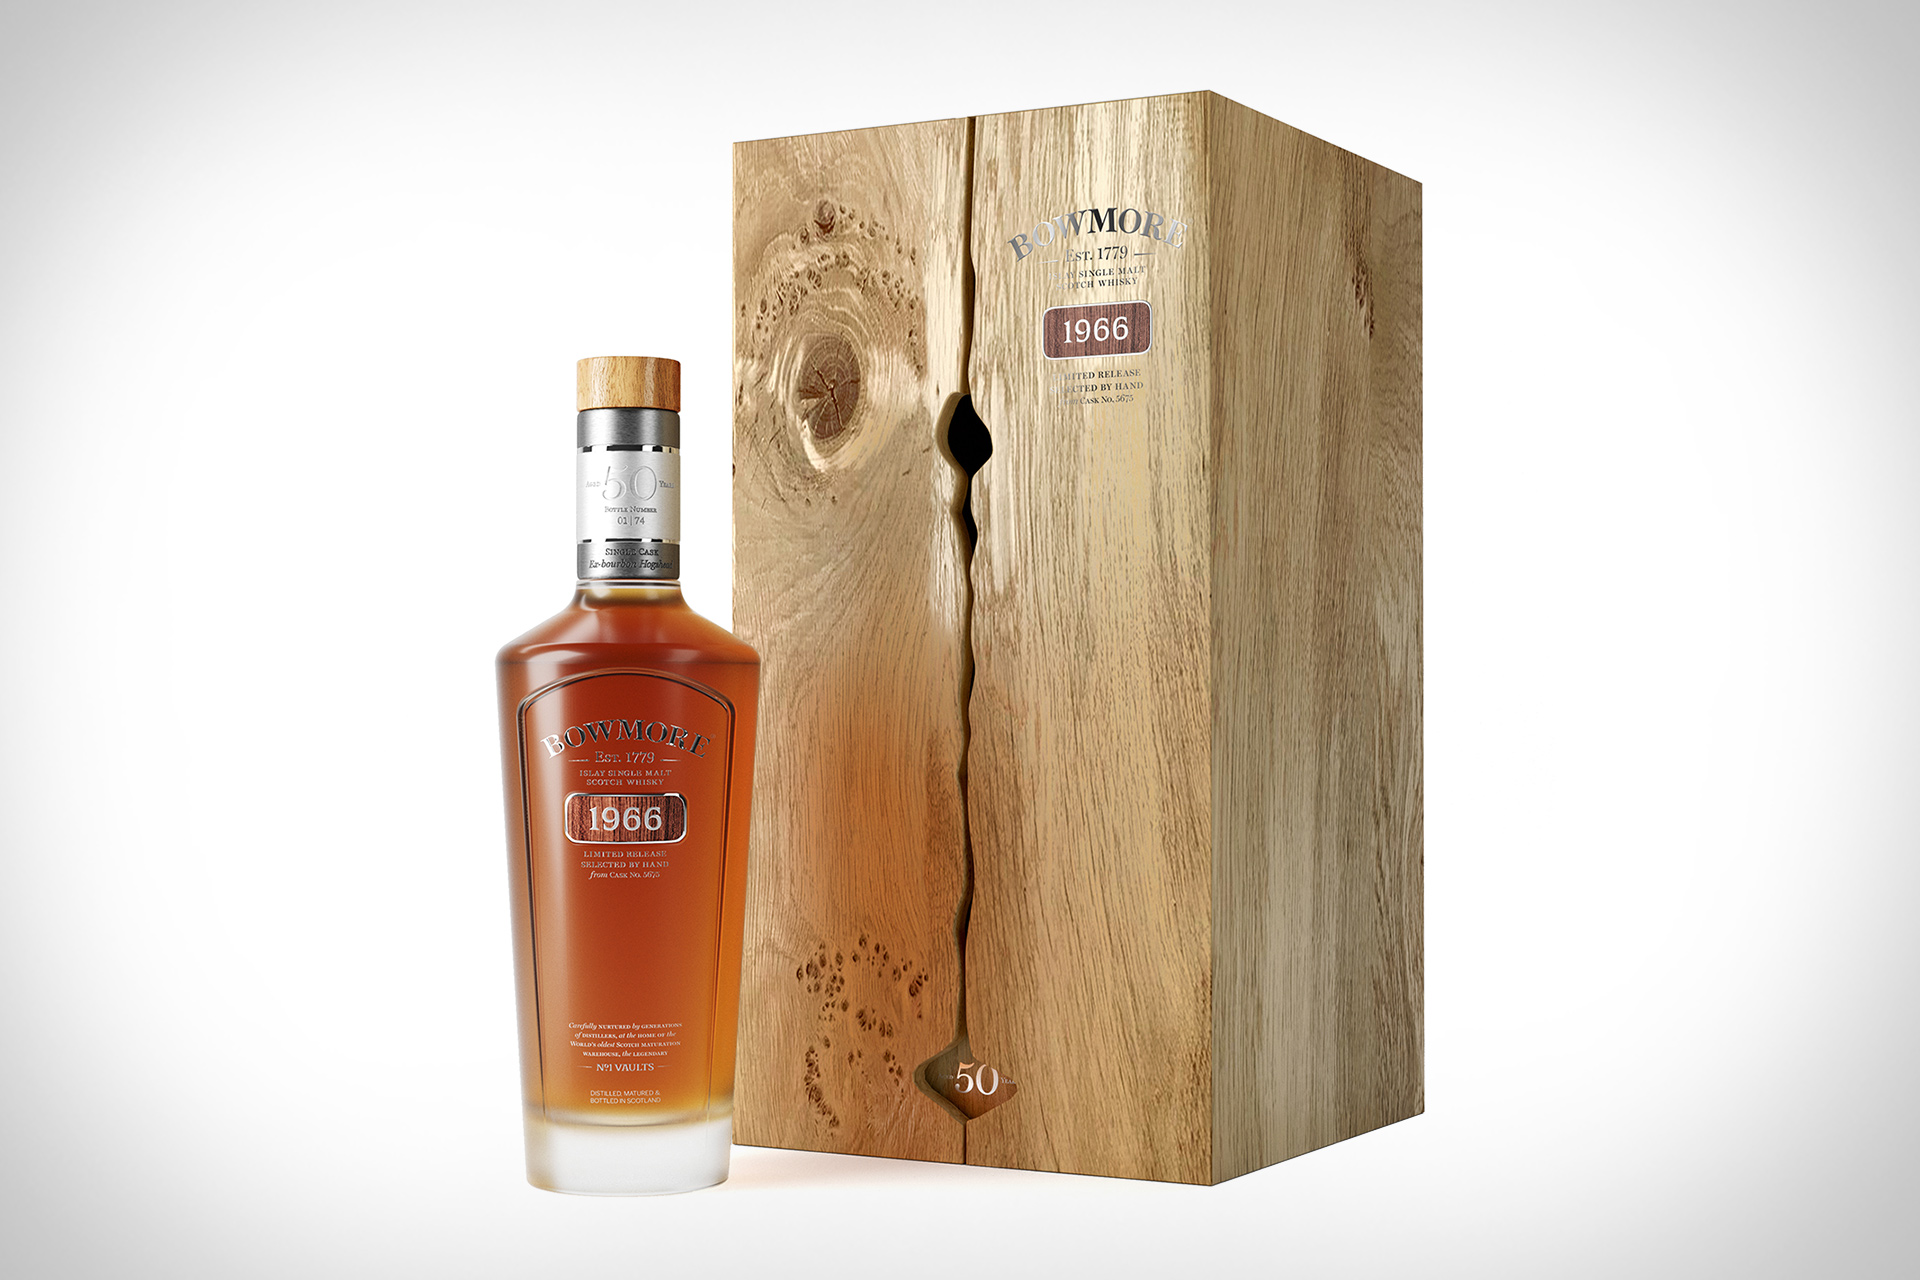 Bowmore 1966 50 Years Old Scotch Whisky